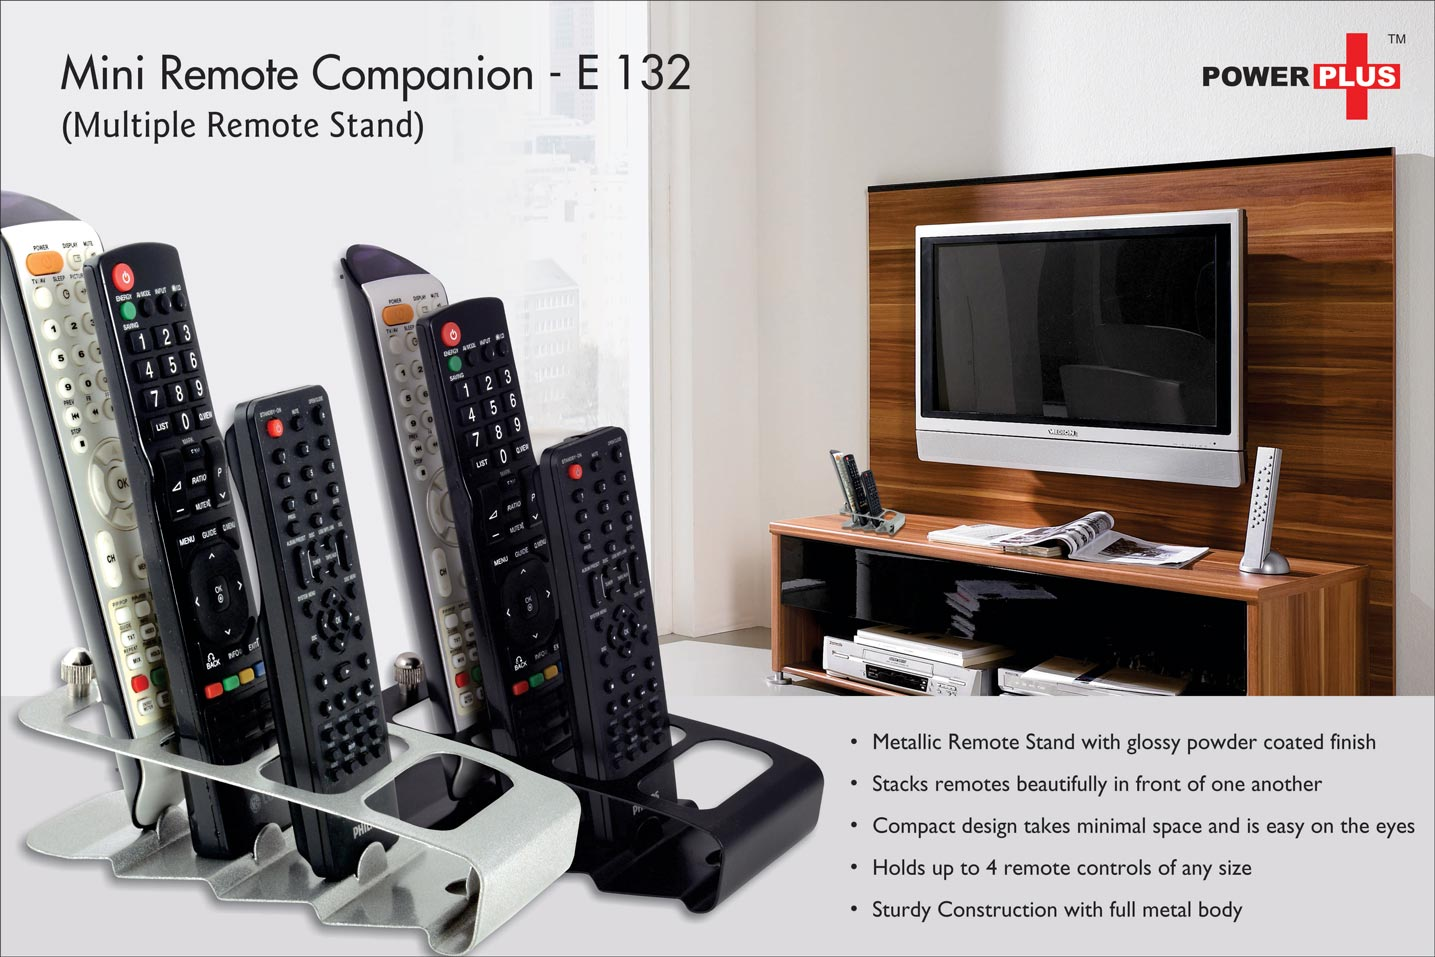 E132 - Power Plus Mini Remote Companion: Multi Remote Stand